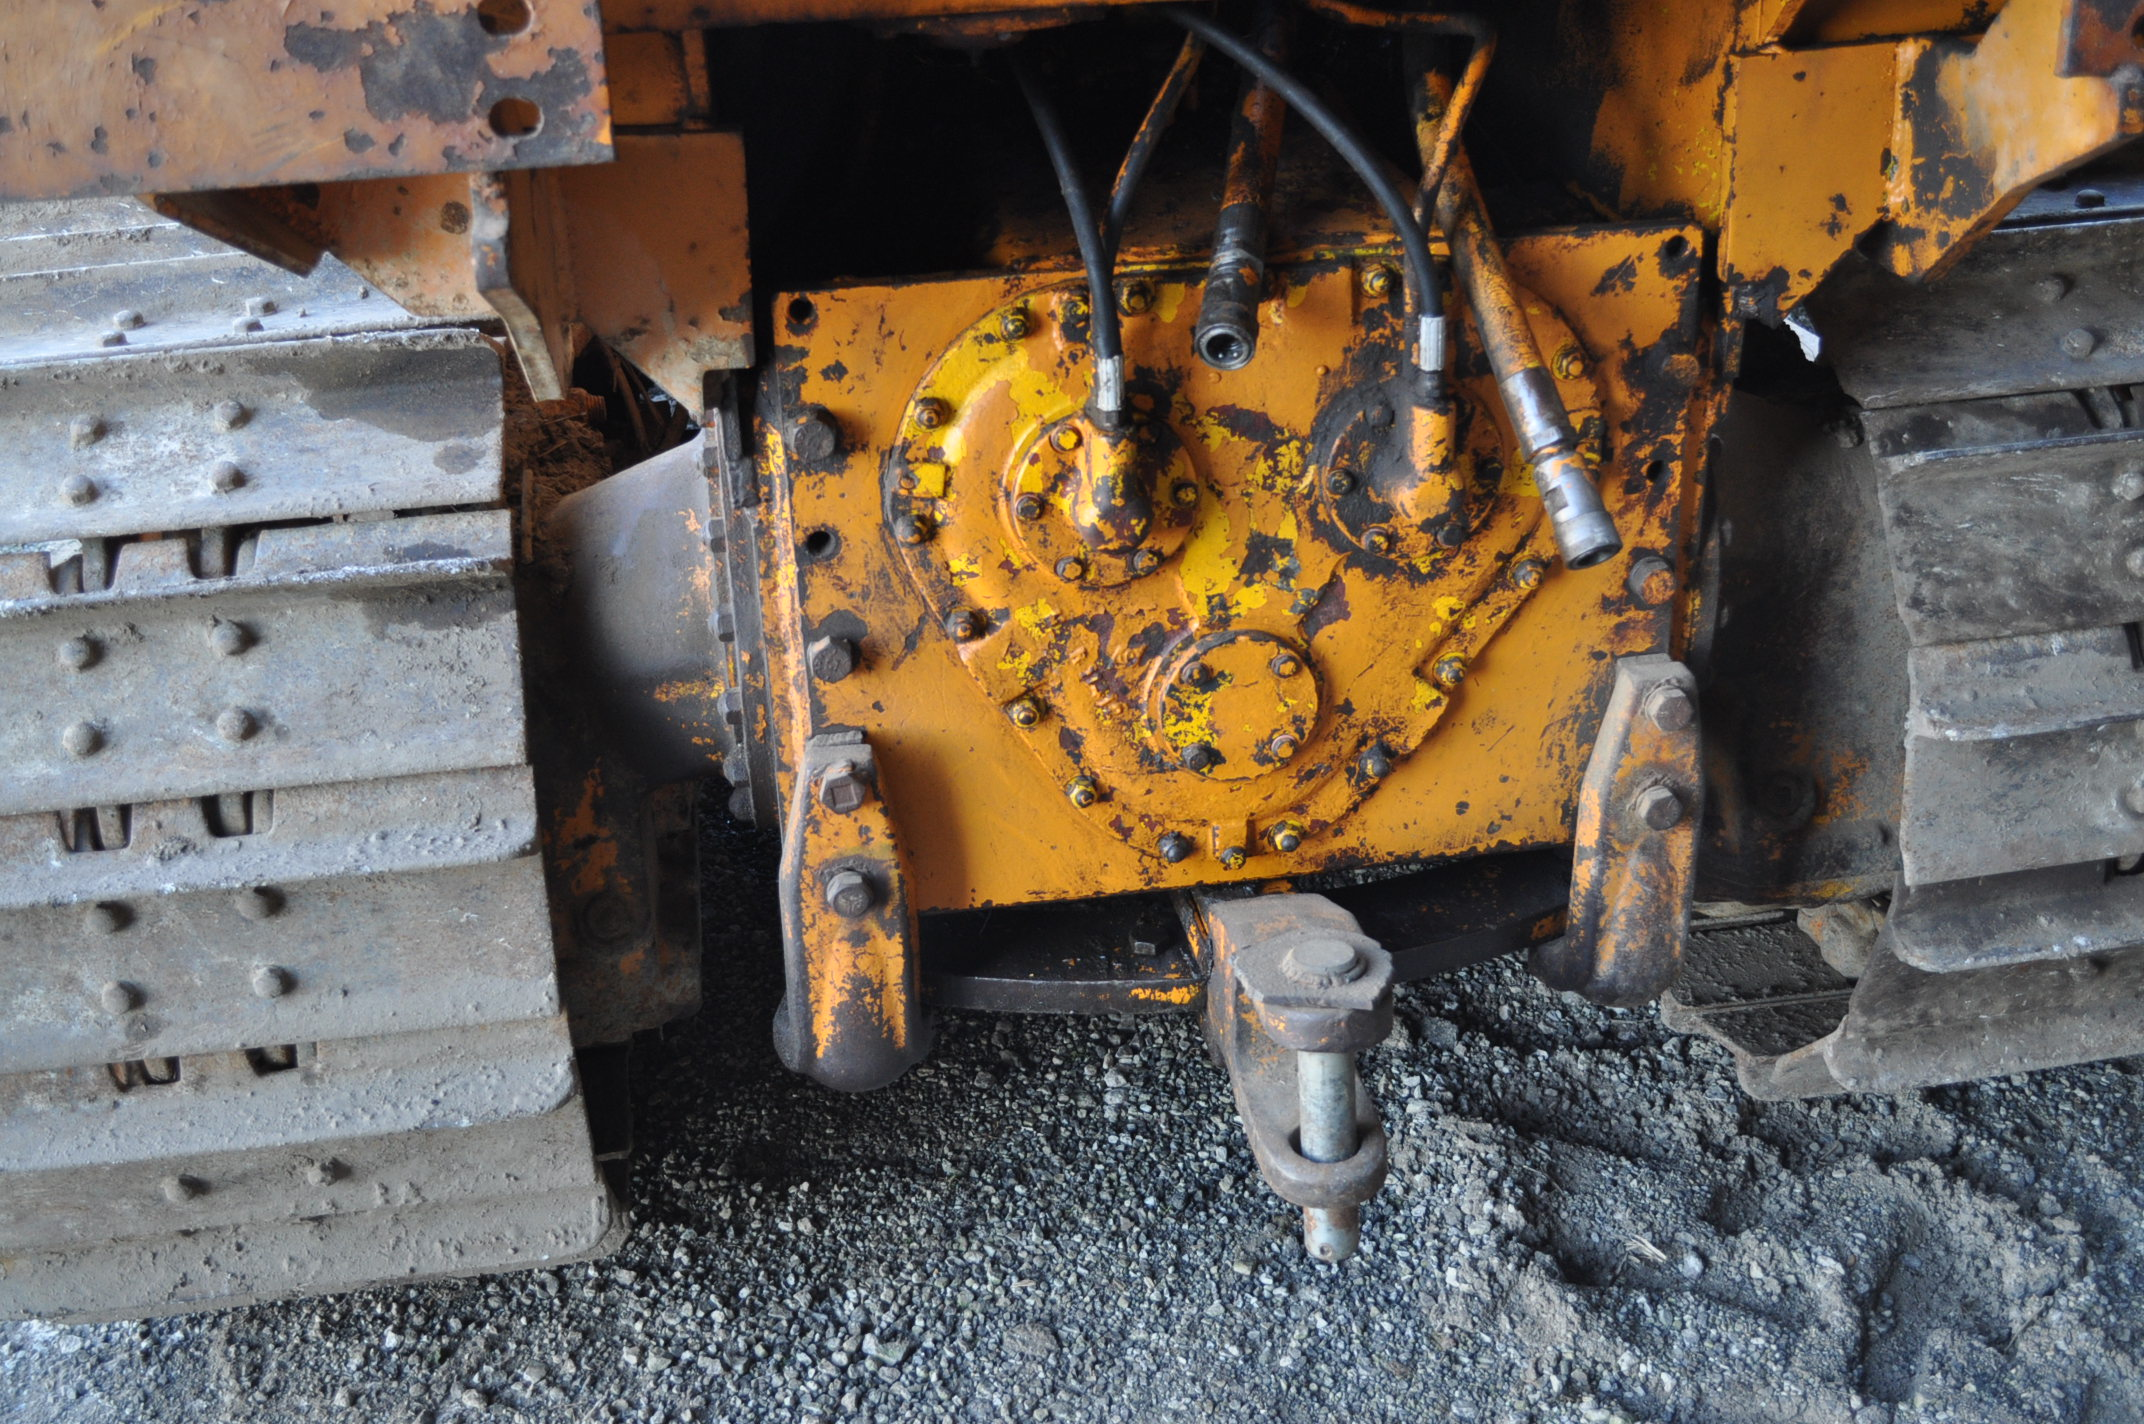 Case 1150 dozer, 8' 4 way blade, rear hitch, diesel, shows 1250 hrs, hrs unkown, SN missing - Image 10 of 11